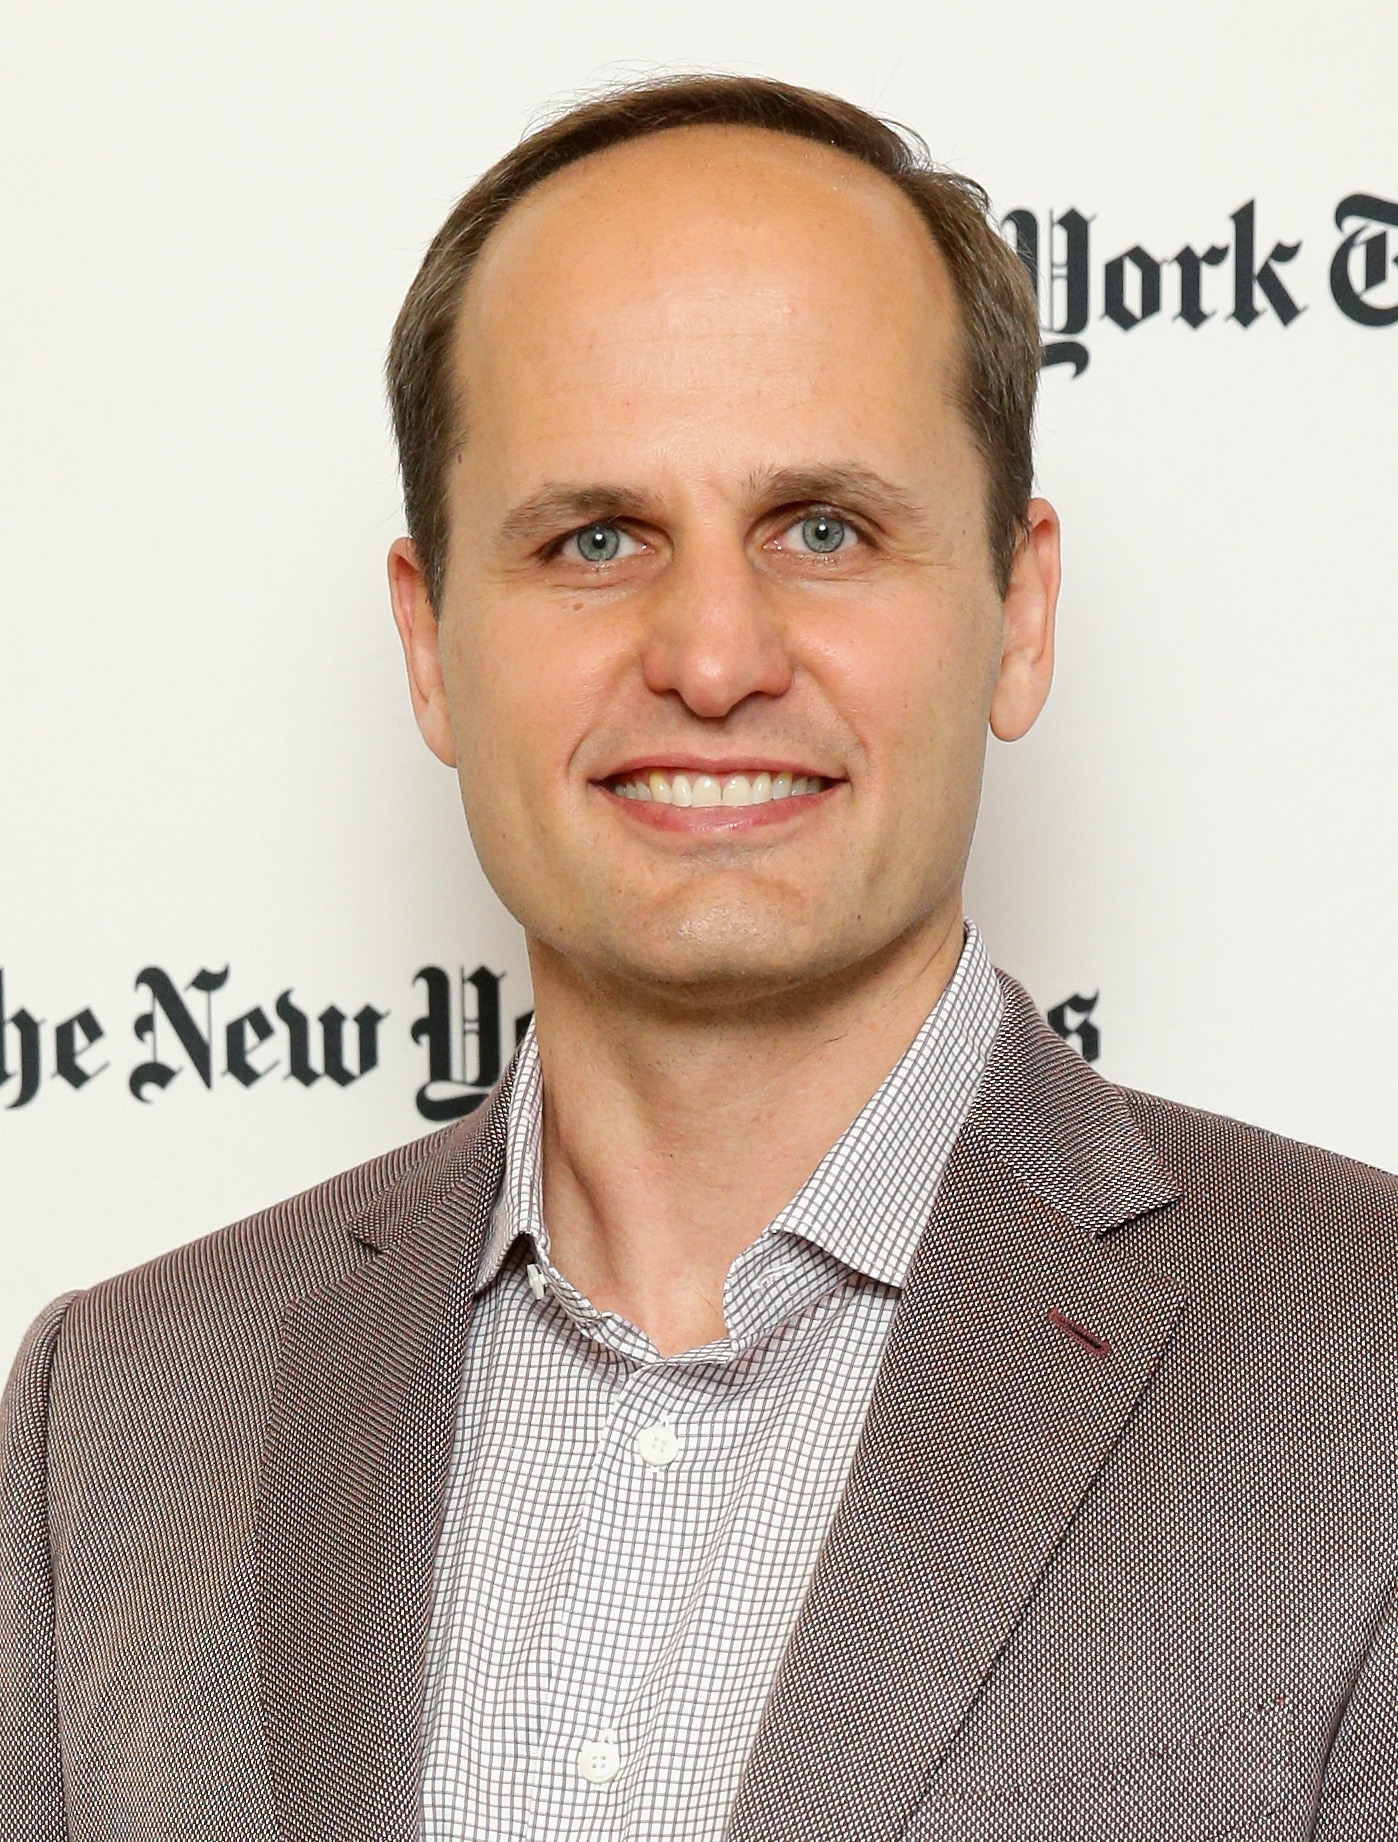 Google Senior Vice President of People Operations Laszlo Bock attends The New York Times Next New World Conference on June 12, 2014 in San Francisco, California.